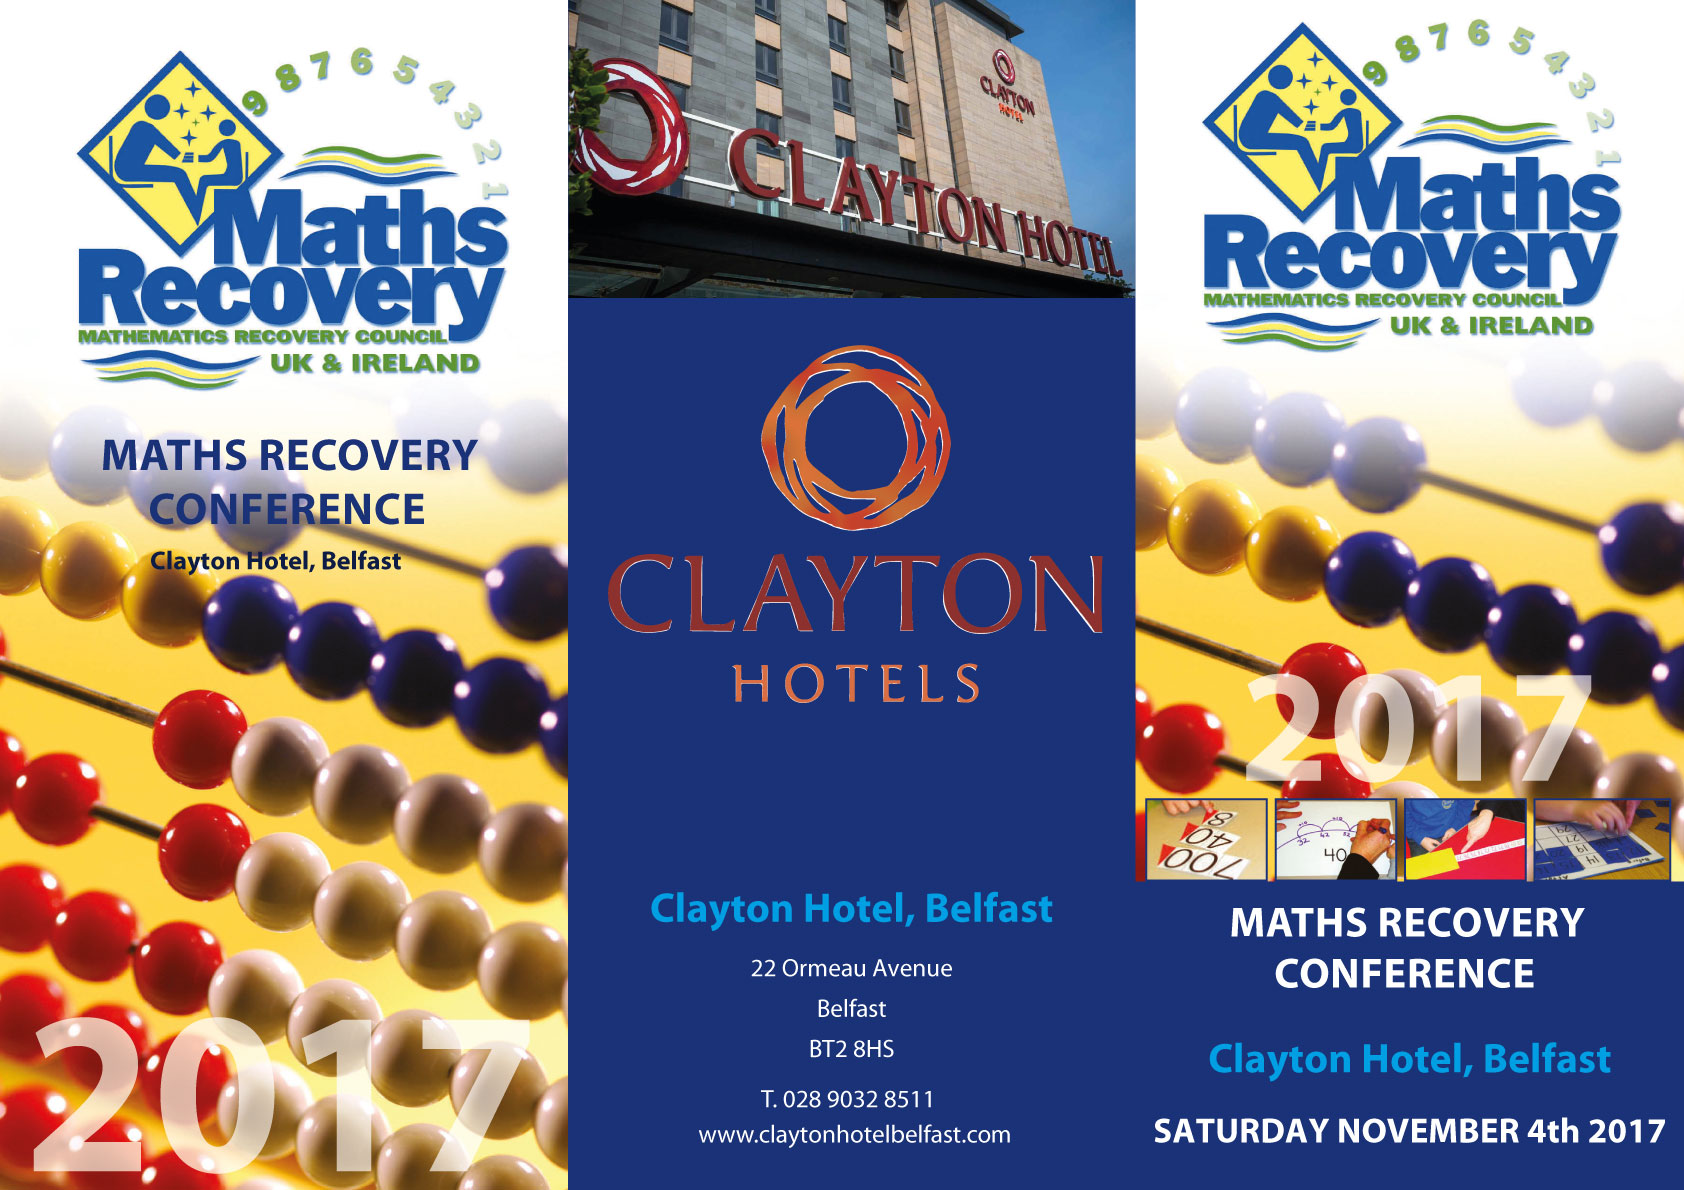 maths-recovery-a4-flyer-f_002.jpg